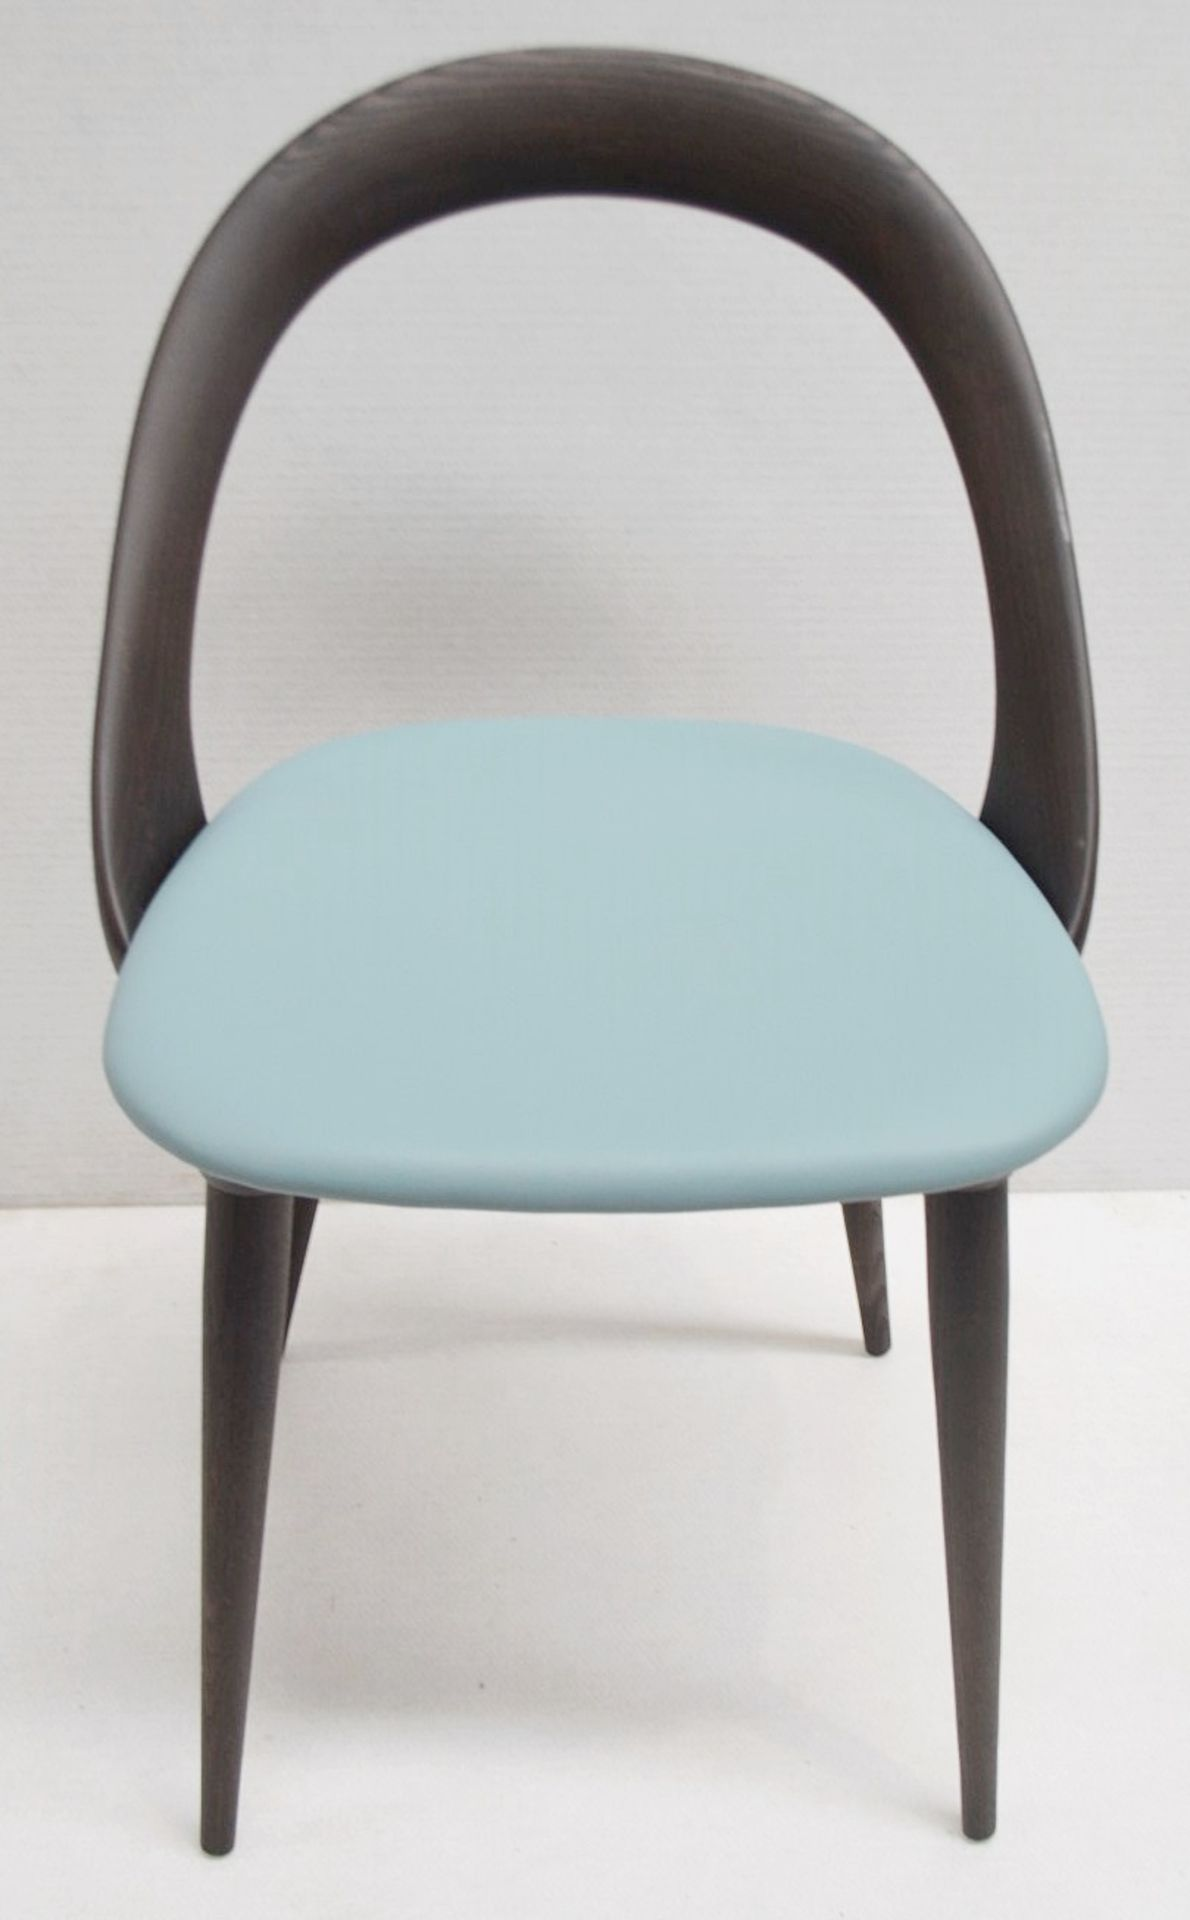 Set Of 4 x PORADA 'Ester' Italian Designer Dining Chairs Featuring Leather Seats - RRP £5,120 - Image 6 of 11